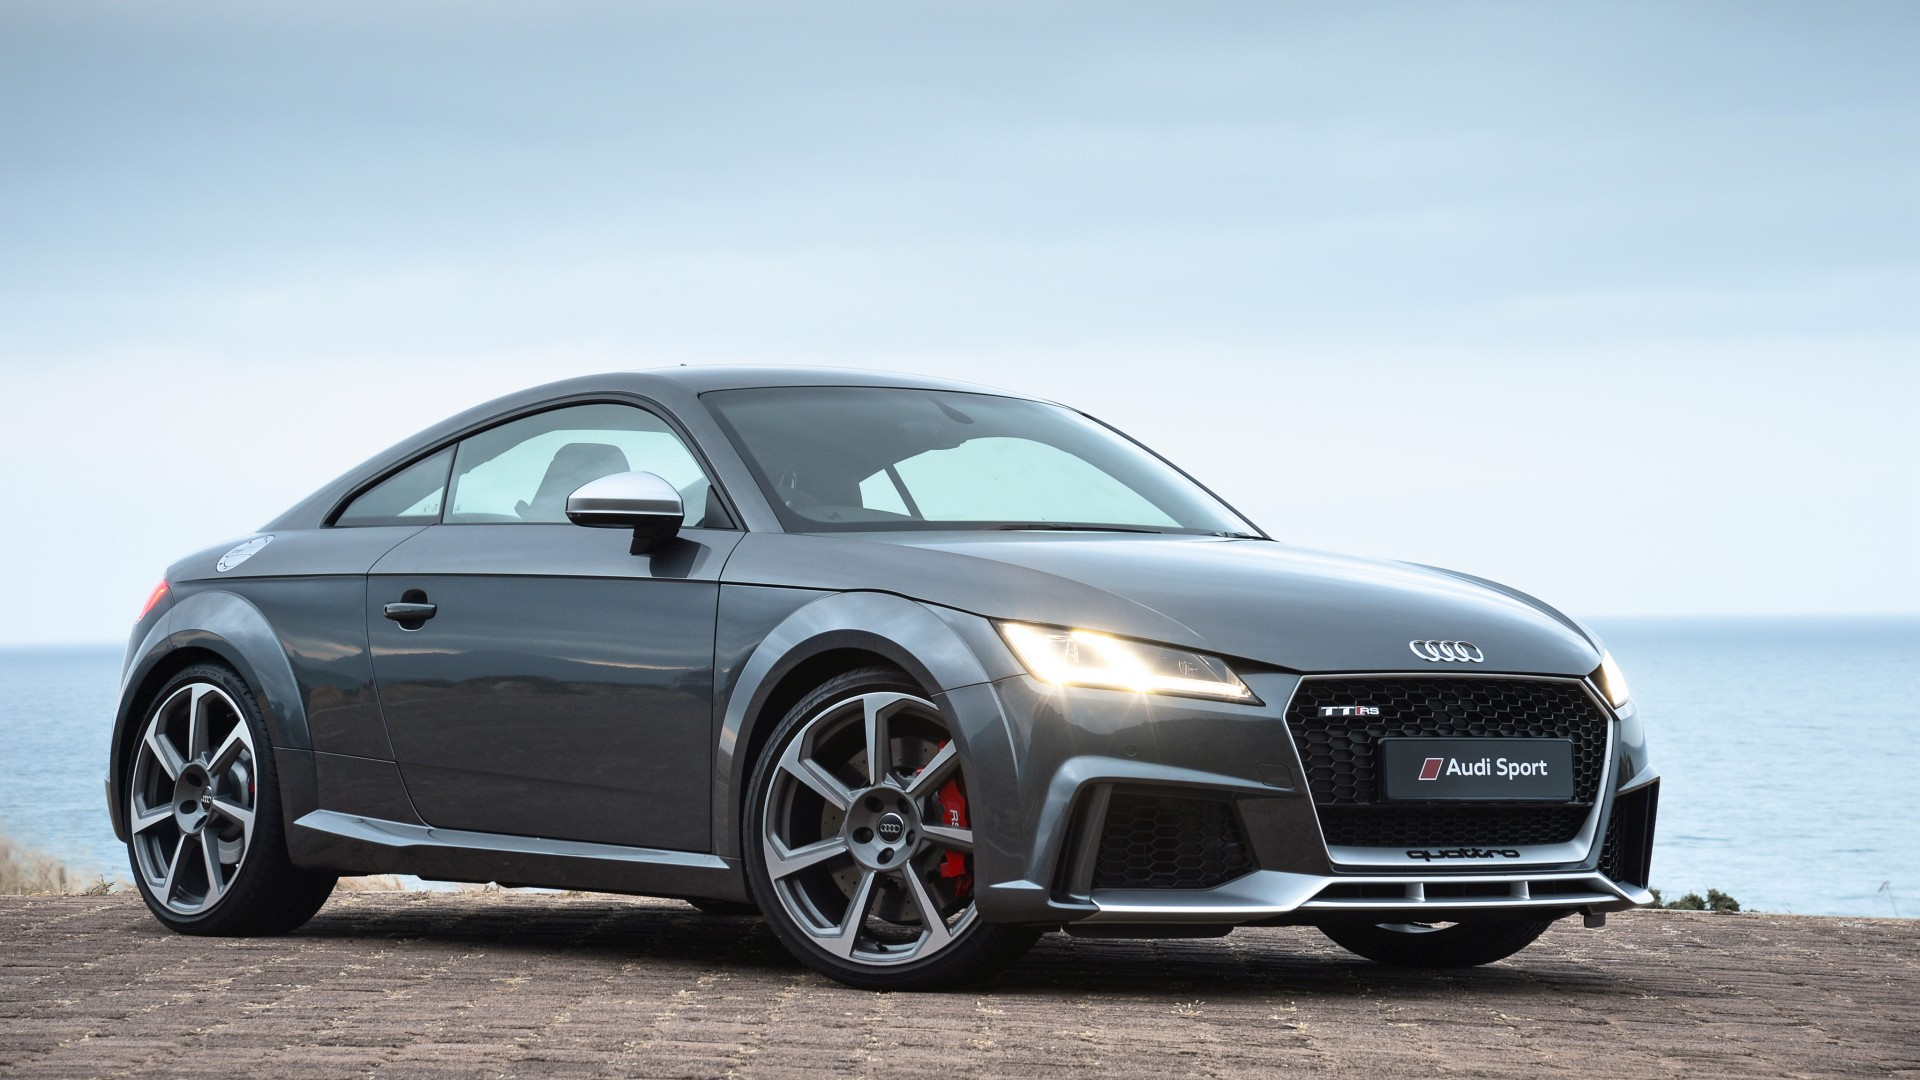 2018 audi tt rs 4k 3 wallpaper hd car wallpapers id 9072. Black Bedroom Furniture Sets. Home Design Ideas